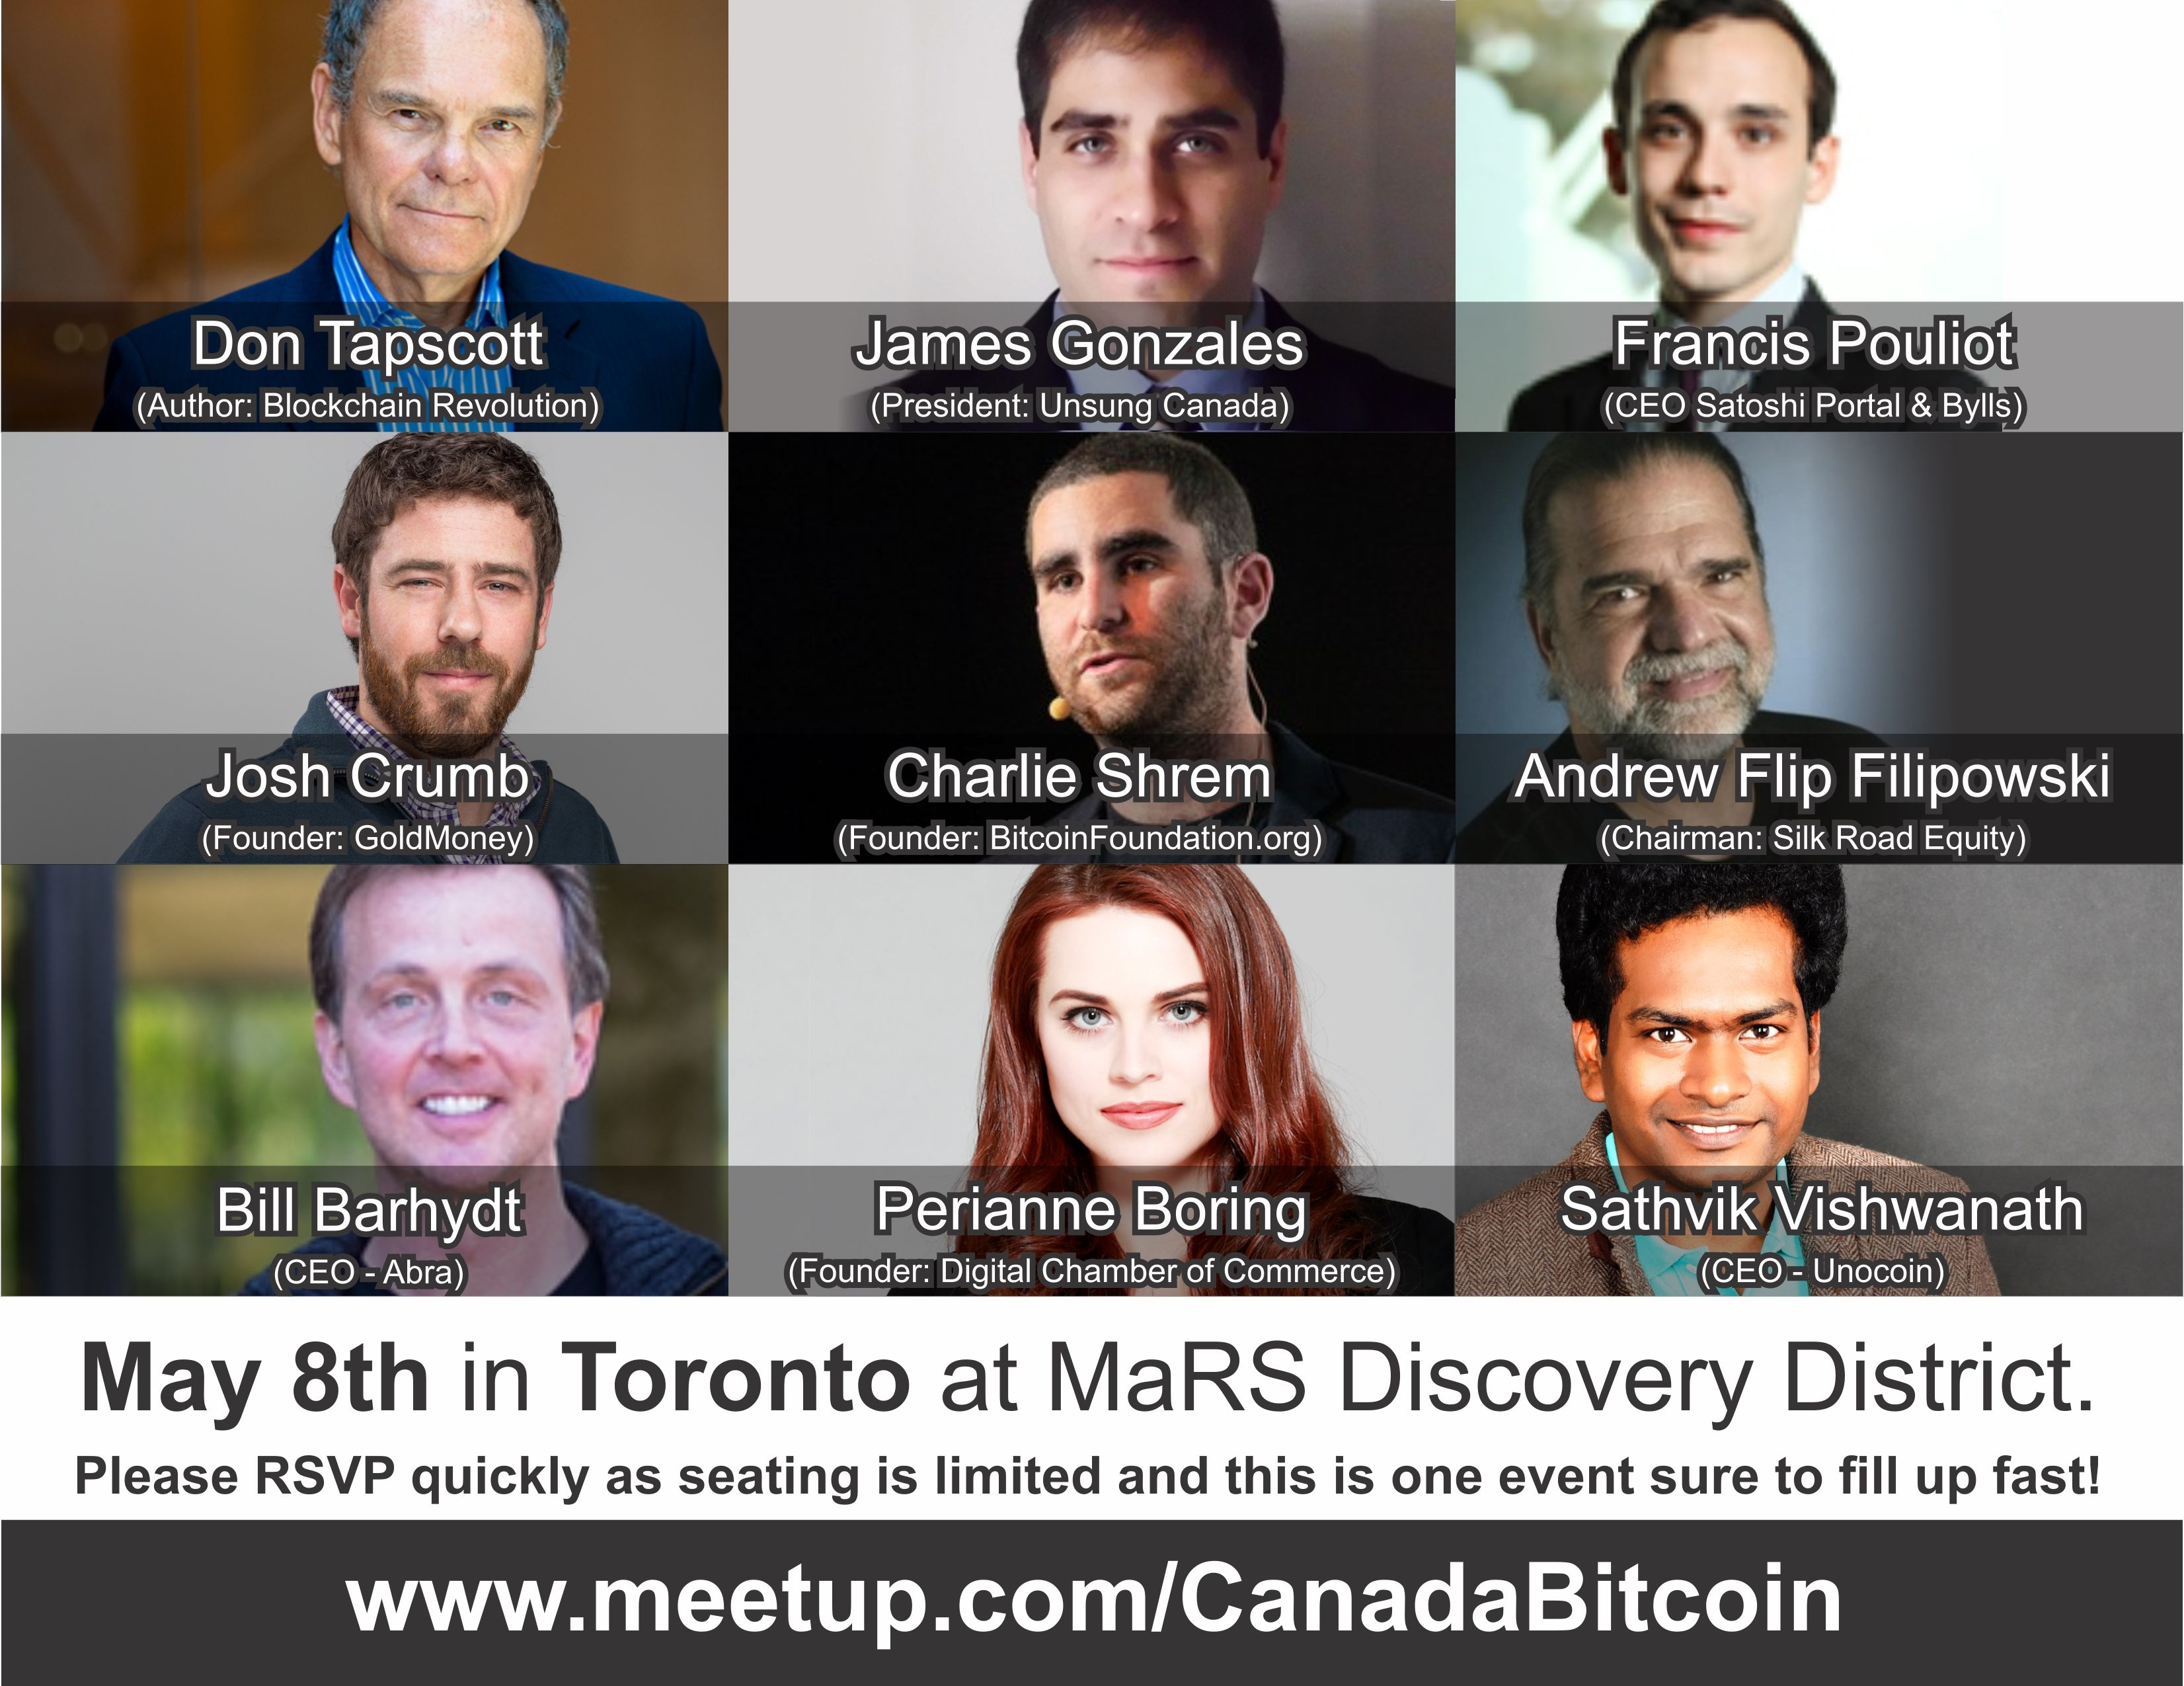 May 8th in Toronto.  One of the biggest Bitcoin Blockchain events ever.  RSVP at your earliest as space is limited: https://t.co/HGWWSO3FTi